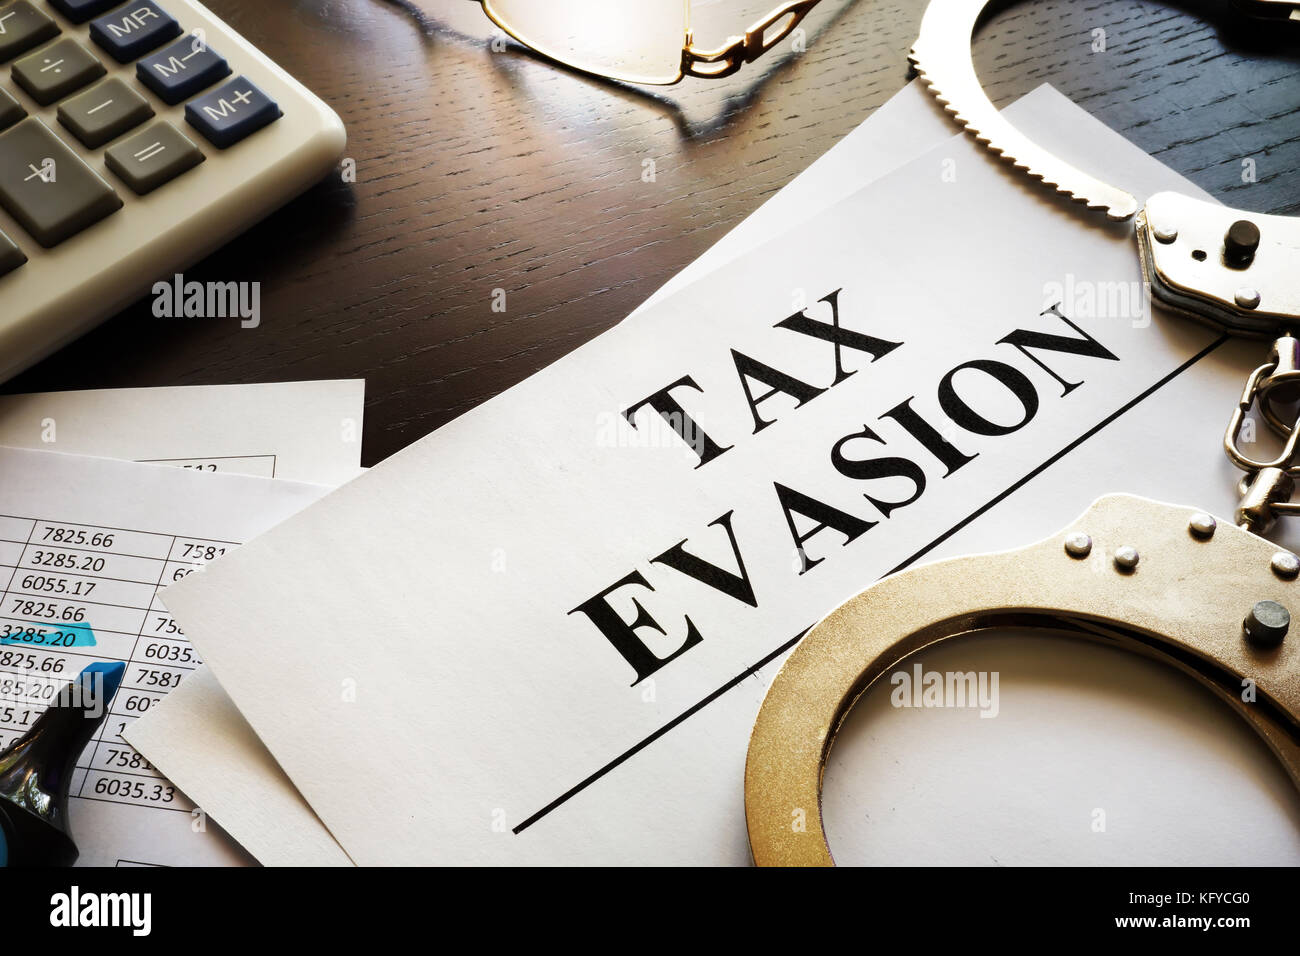 Report Property Tax Evasion